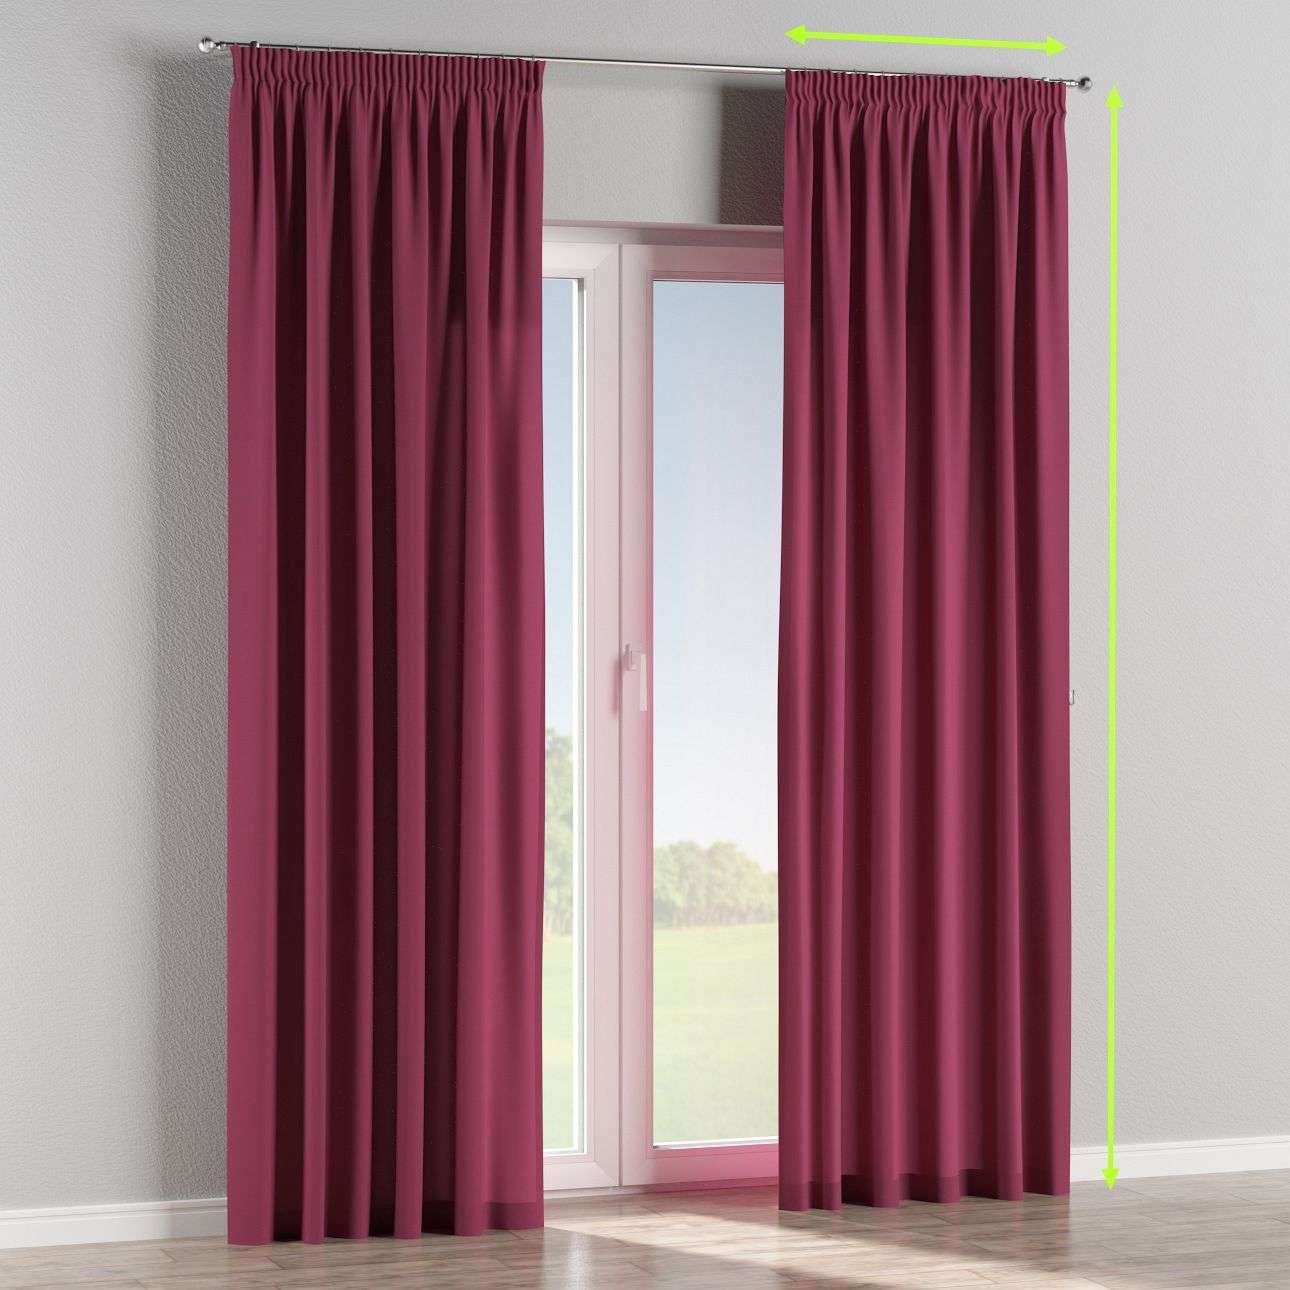 Pencil pleat curtains in collection Cotton Panama, fabric: 702-32